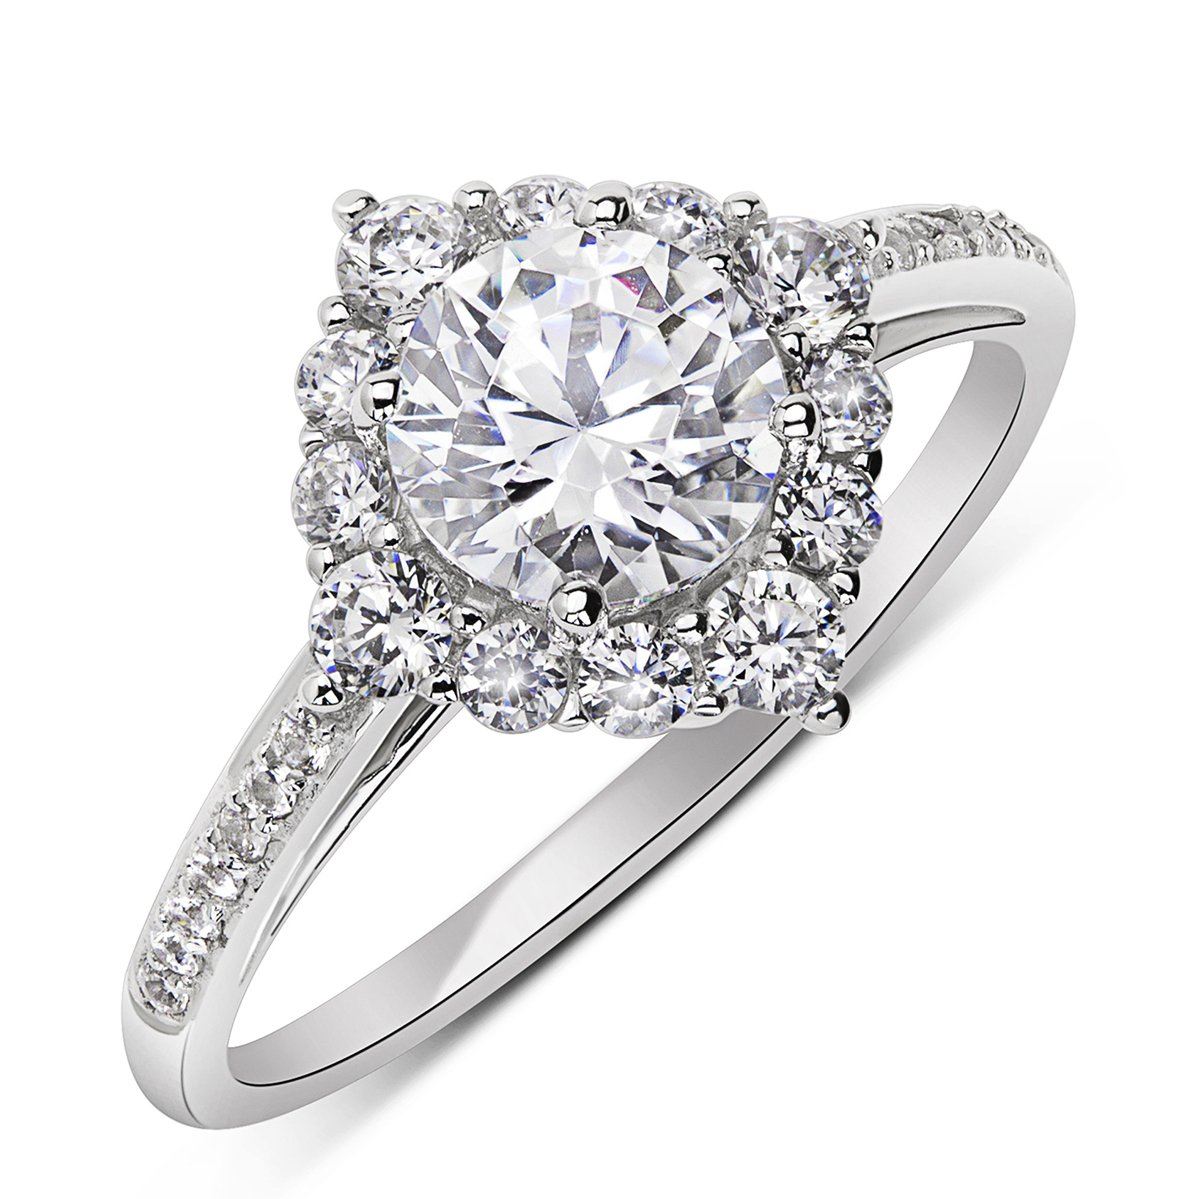 14K Rose Gold or White Gold 1.2 cttw Round CZ Solitaire Halo Ring, 10